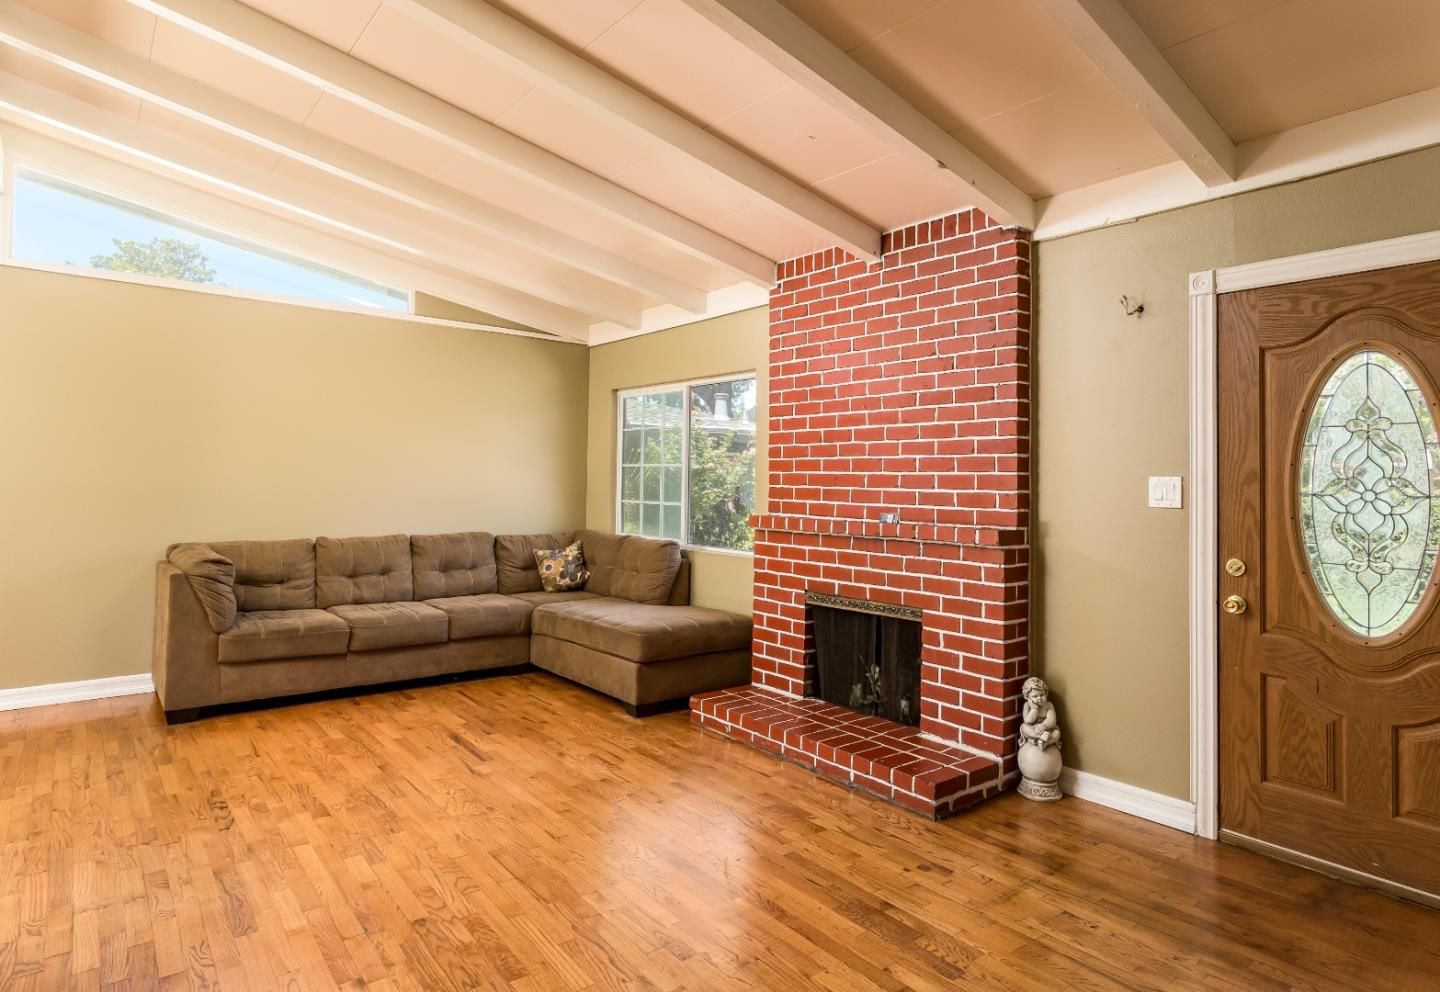 Additional photo for property listing at 1762 Oswald Place  Santa Clara, California 95051 United States